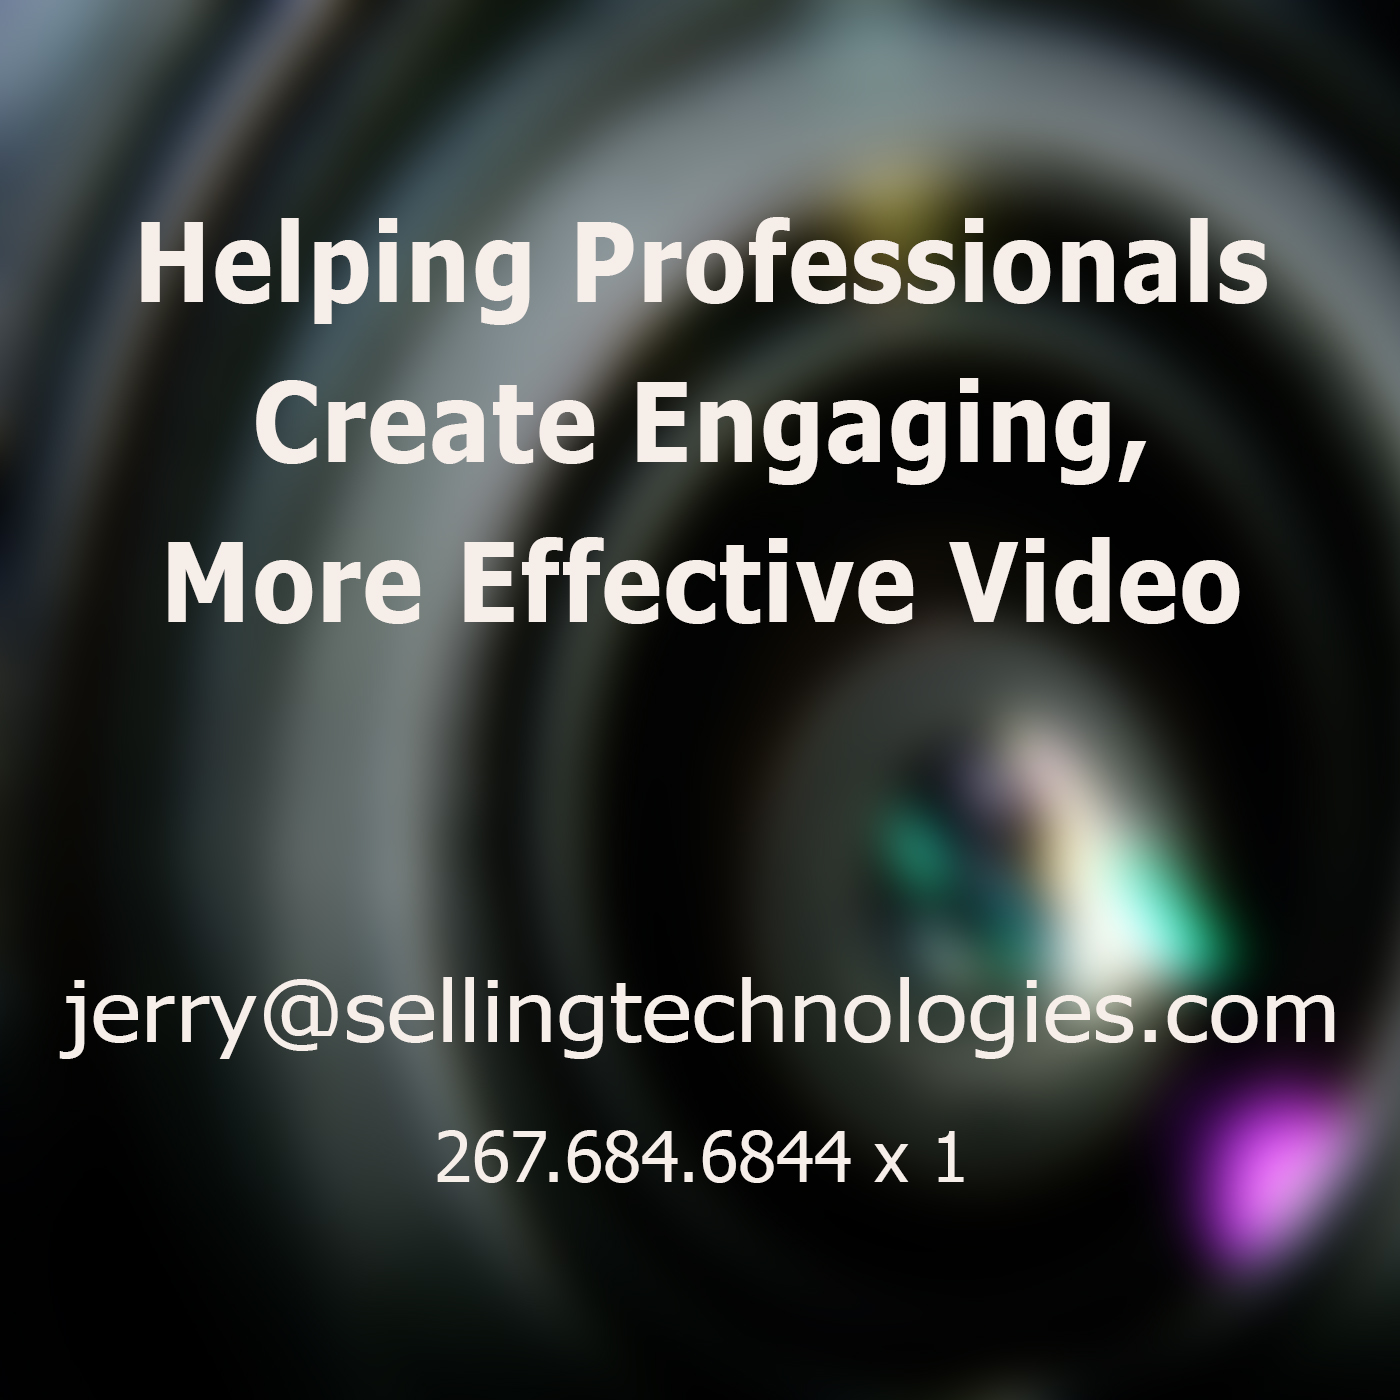 America's Business Video Coach